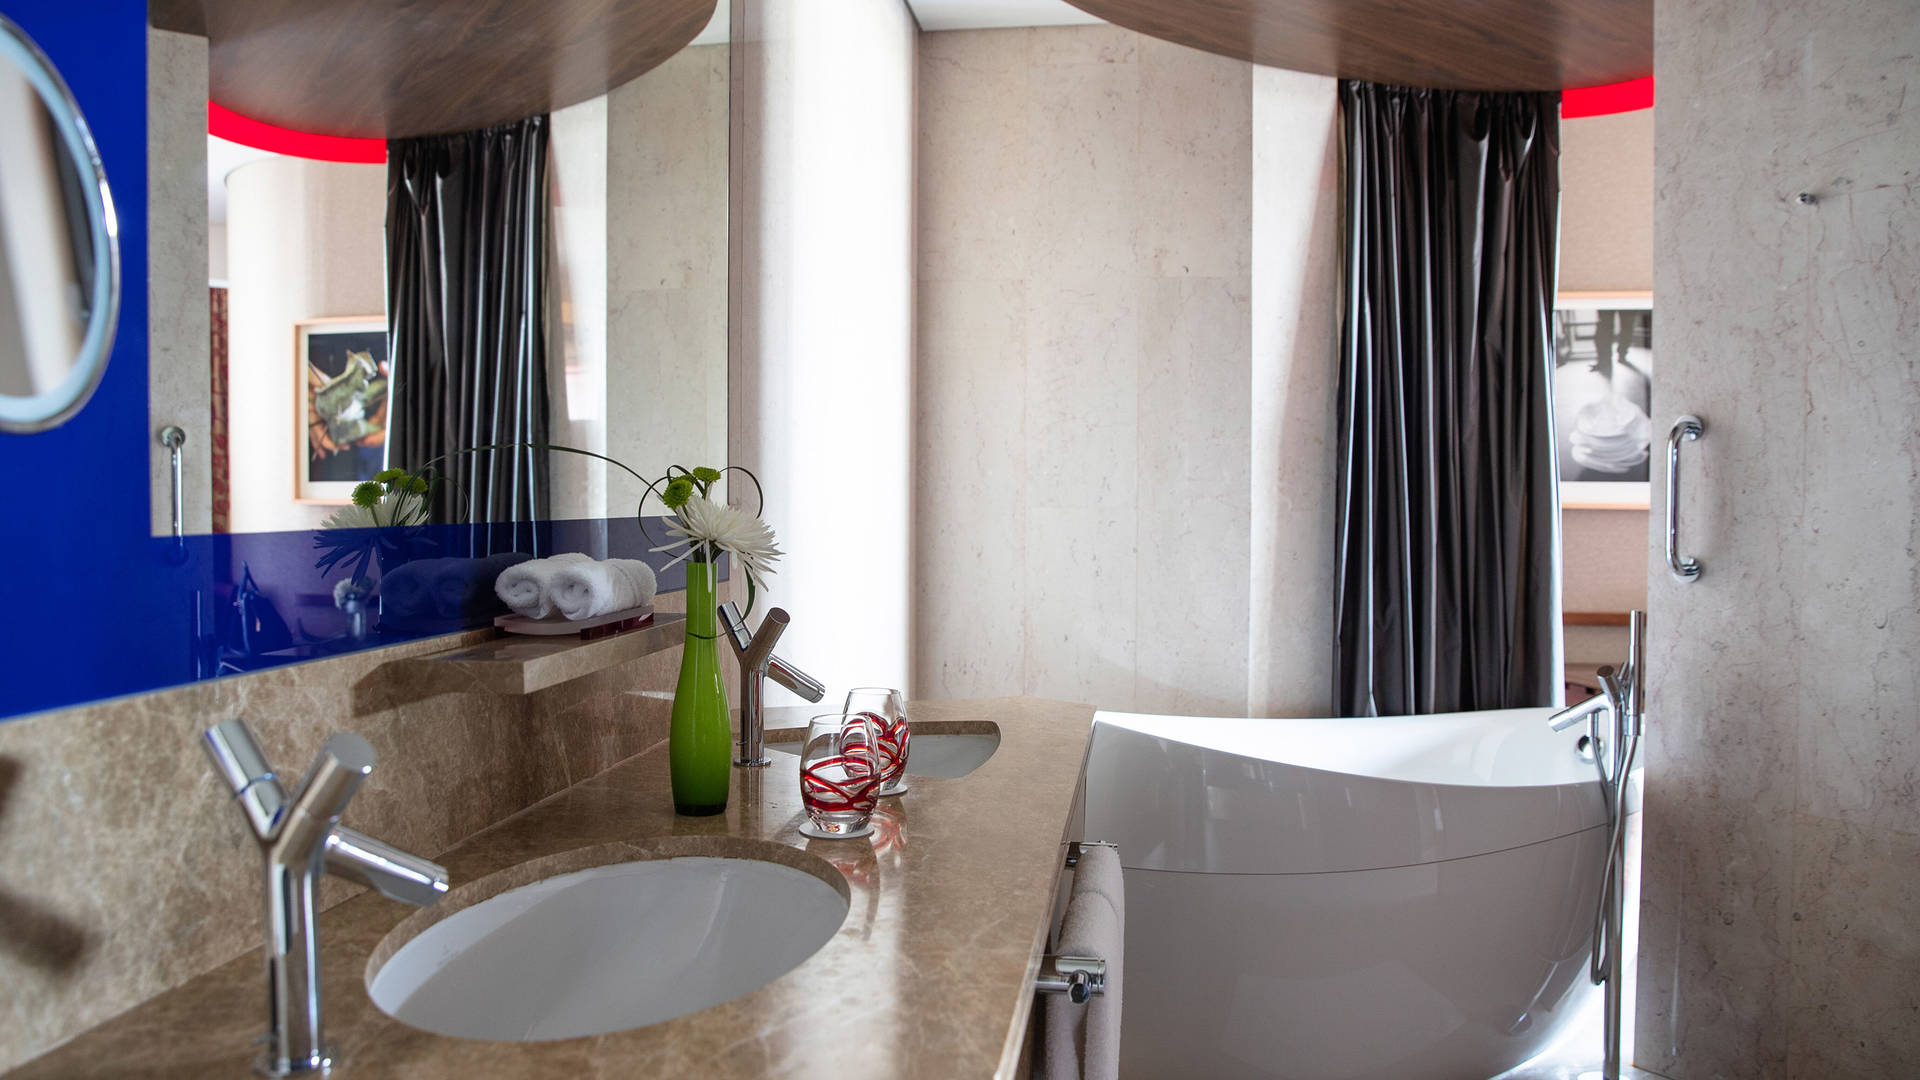 Premier-Club-Bathroom-Jumeirah-Creekside-Hotel